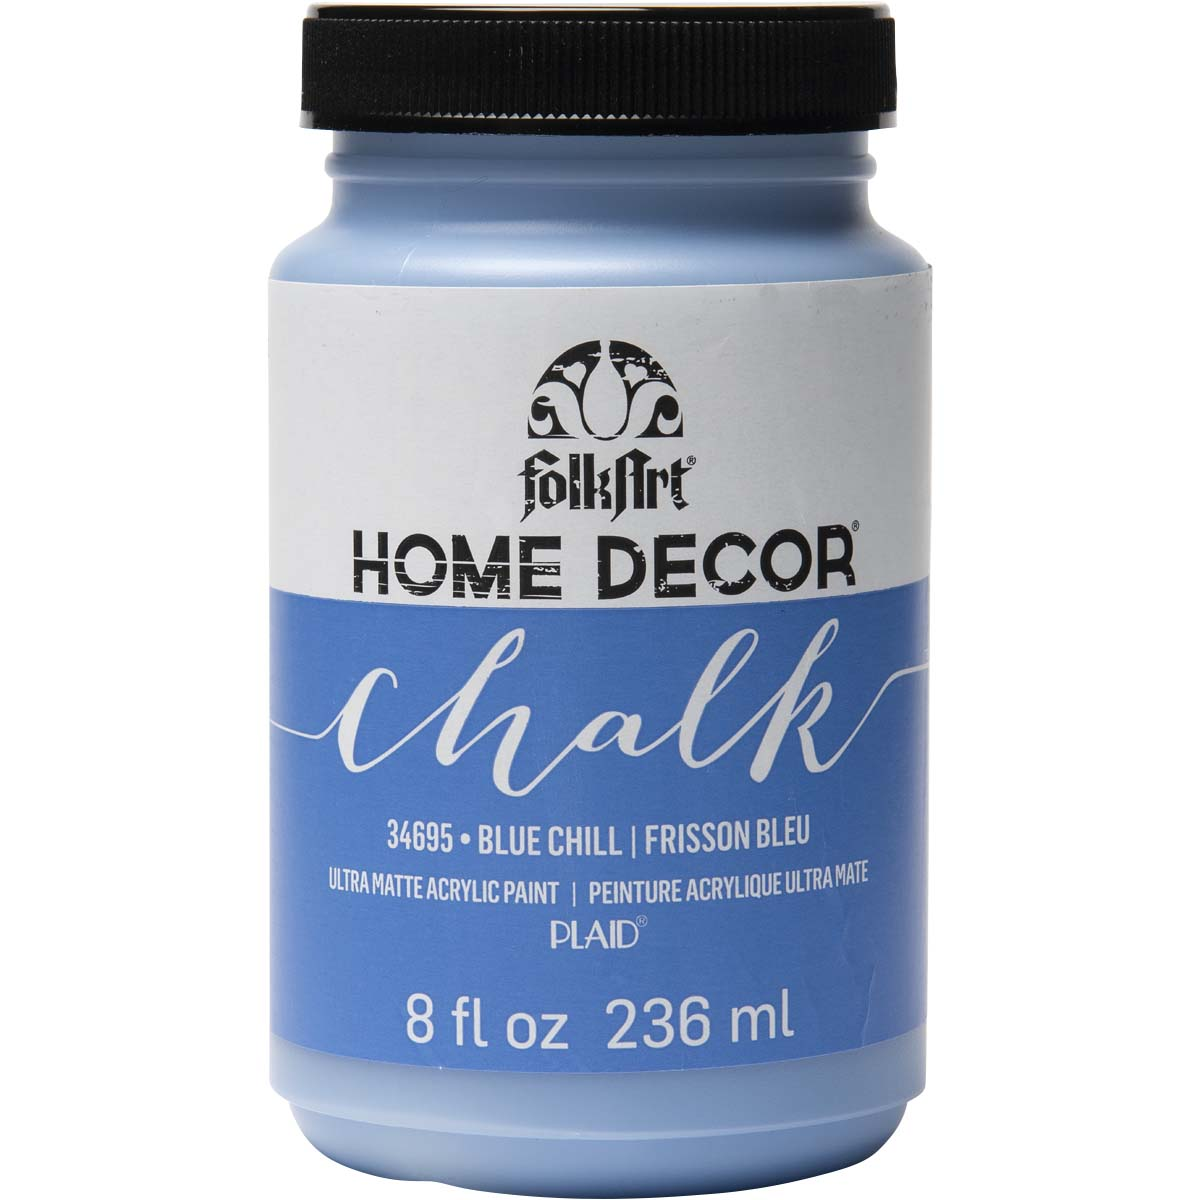 FolkArt ® Home Decor™ Chalk - Blue Chill, 8 oz. - 34695